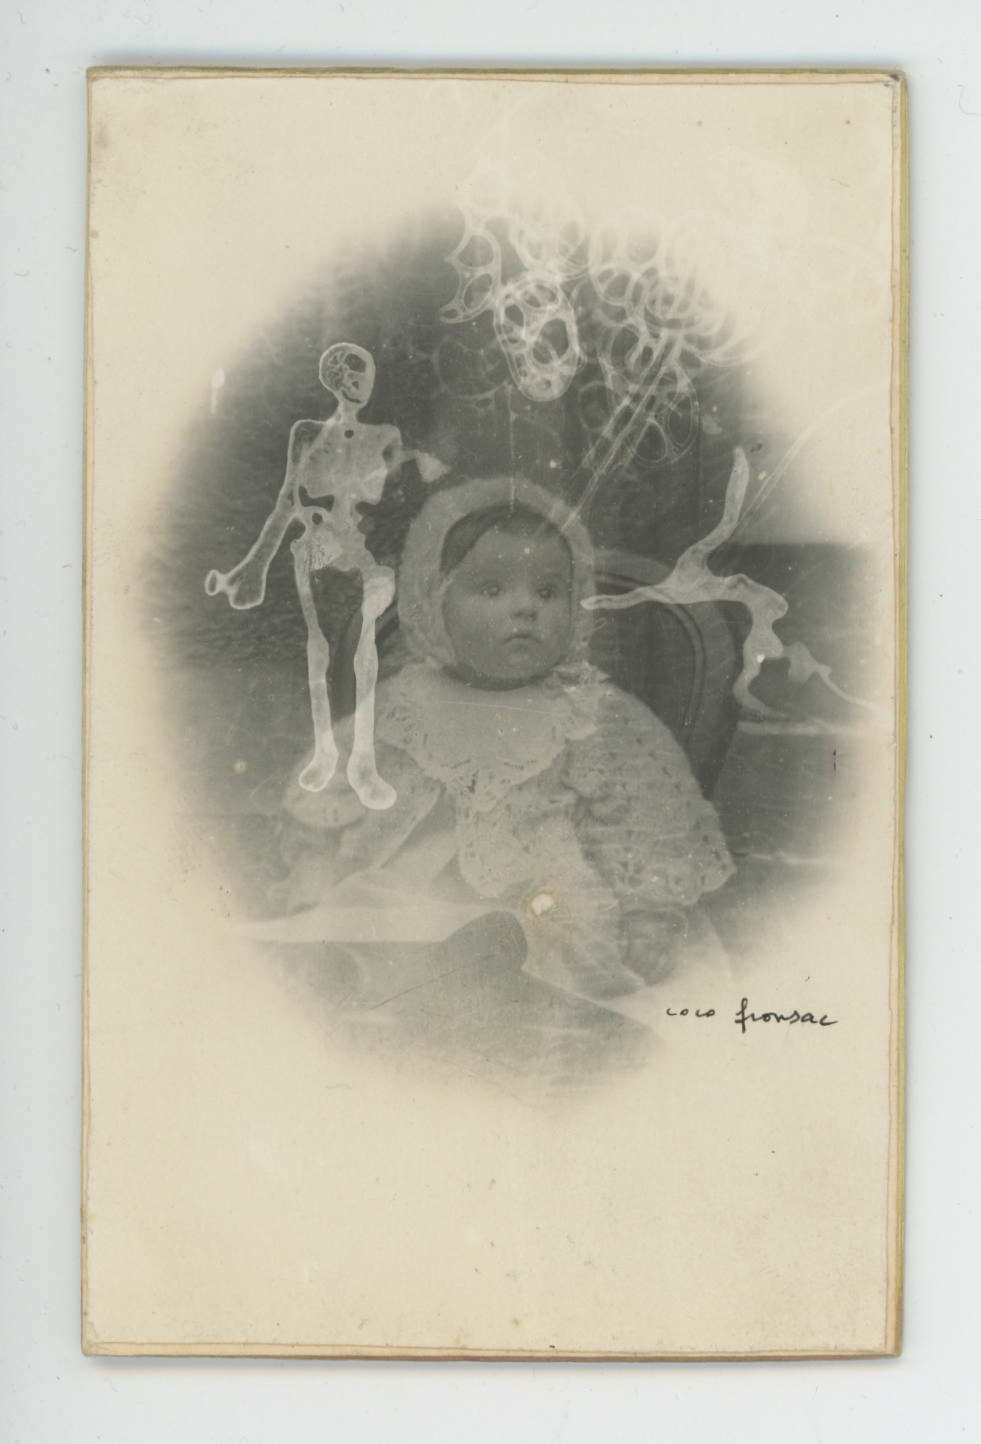 Coco Fronsac  Baby 4, Spiritualist Photo Series  , 1985/2010 Ink, etching on vintage photograph 4.17 x 3.82 inches 10.6 x 9.7 cm CoF 16